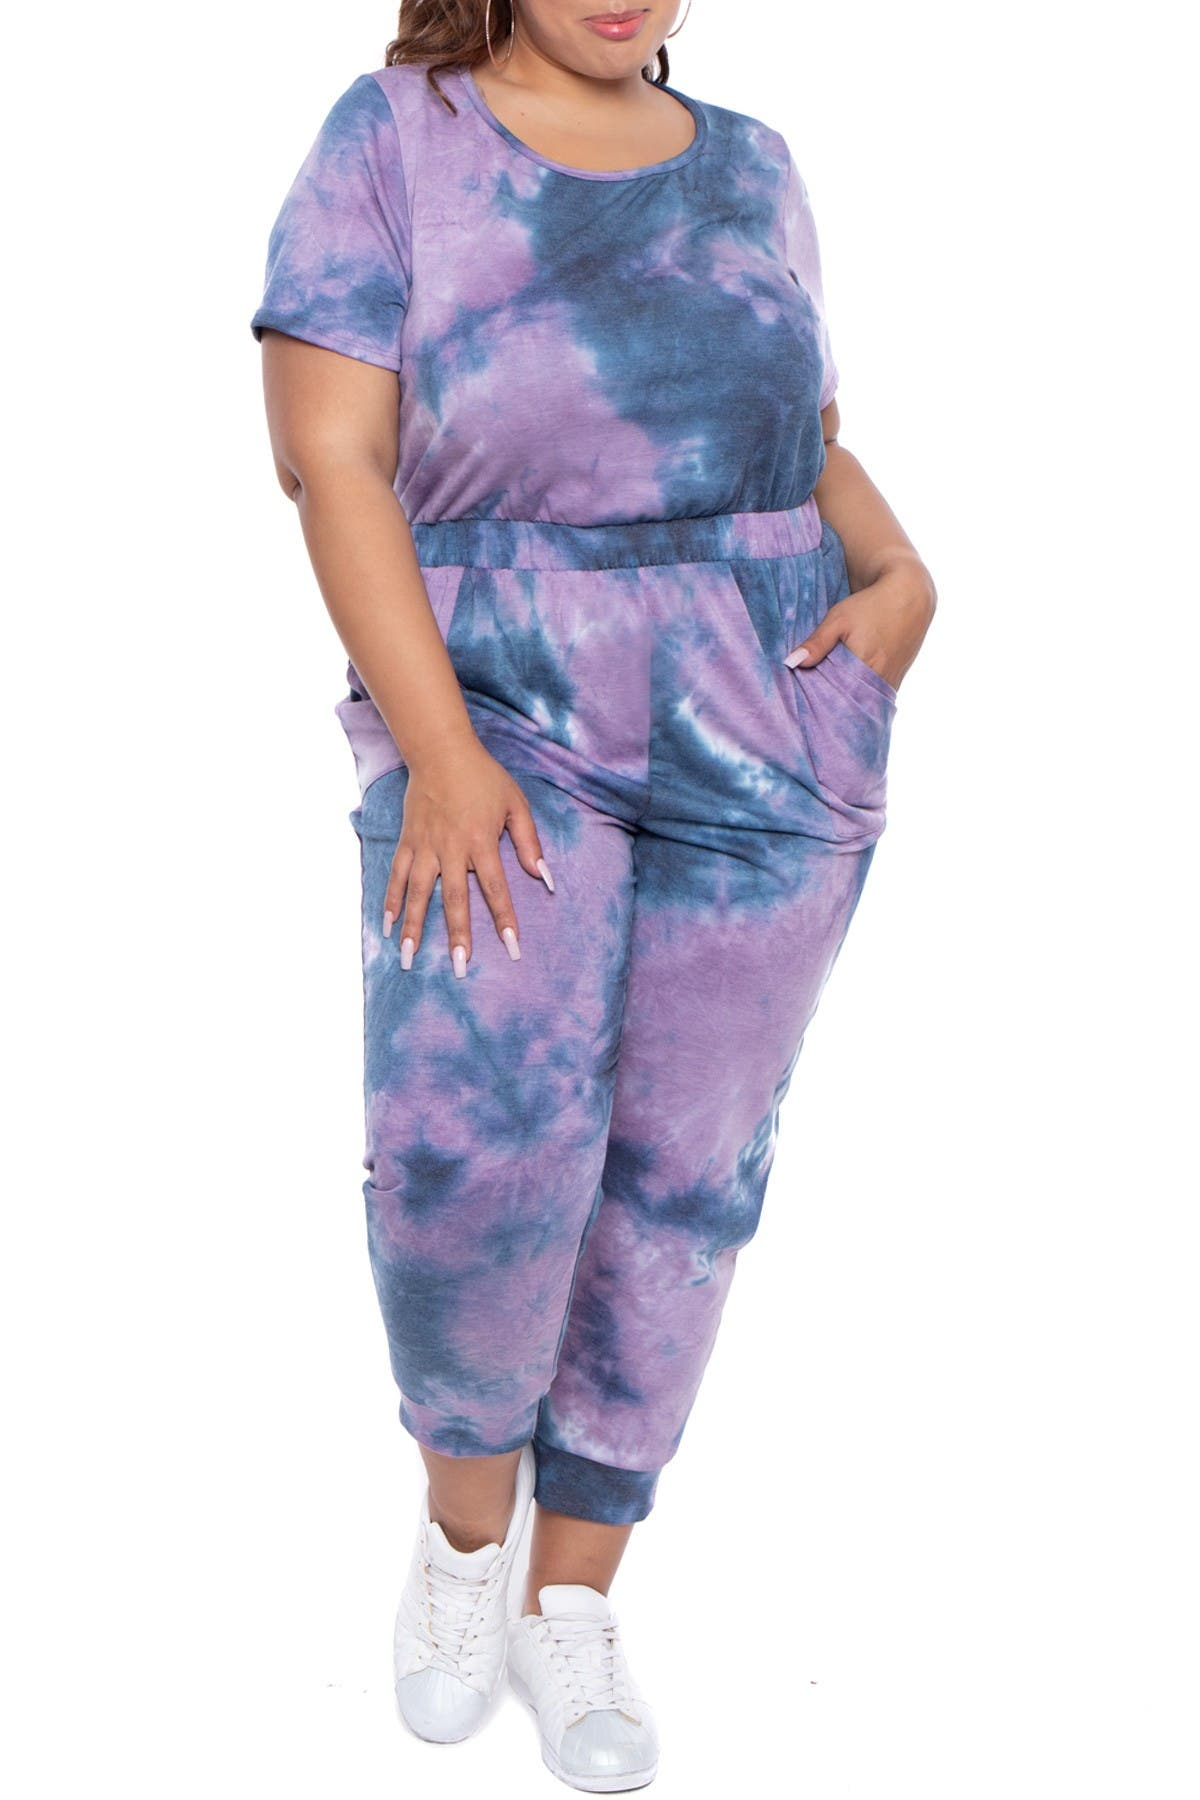 Image of Curvy Sense Crew Neck Fleece Jumpsuit